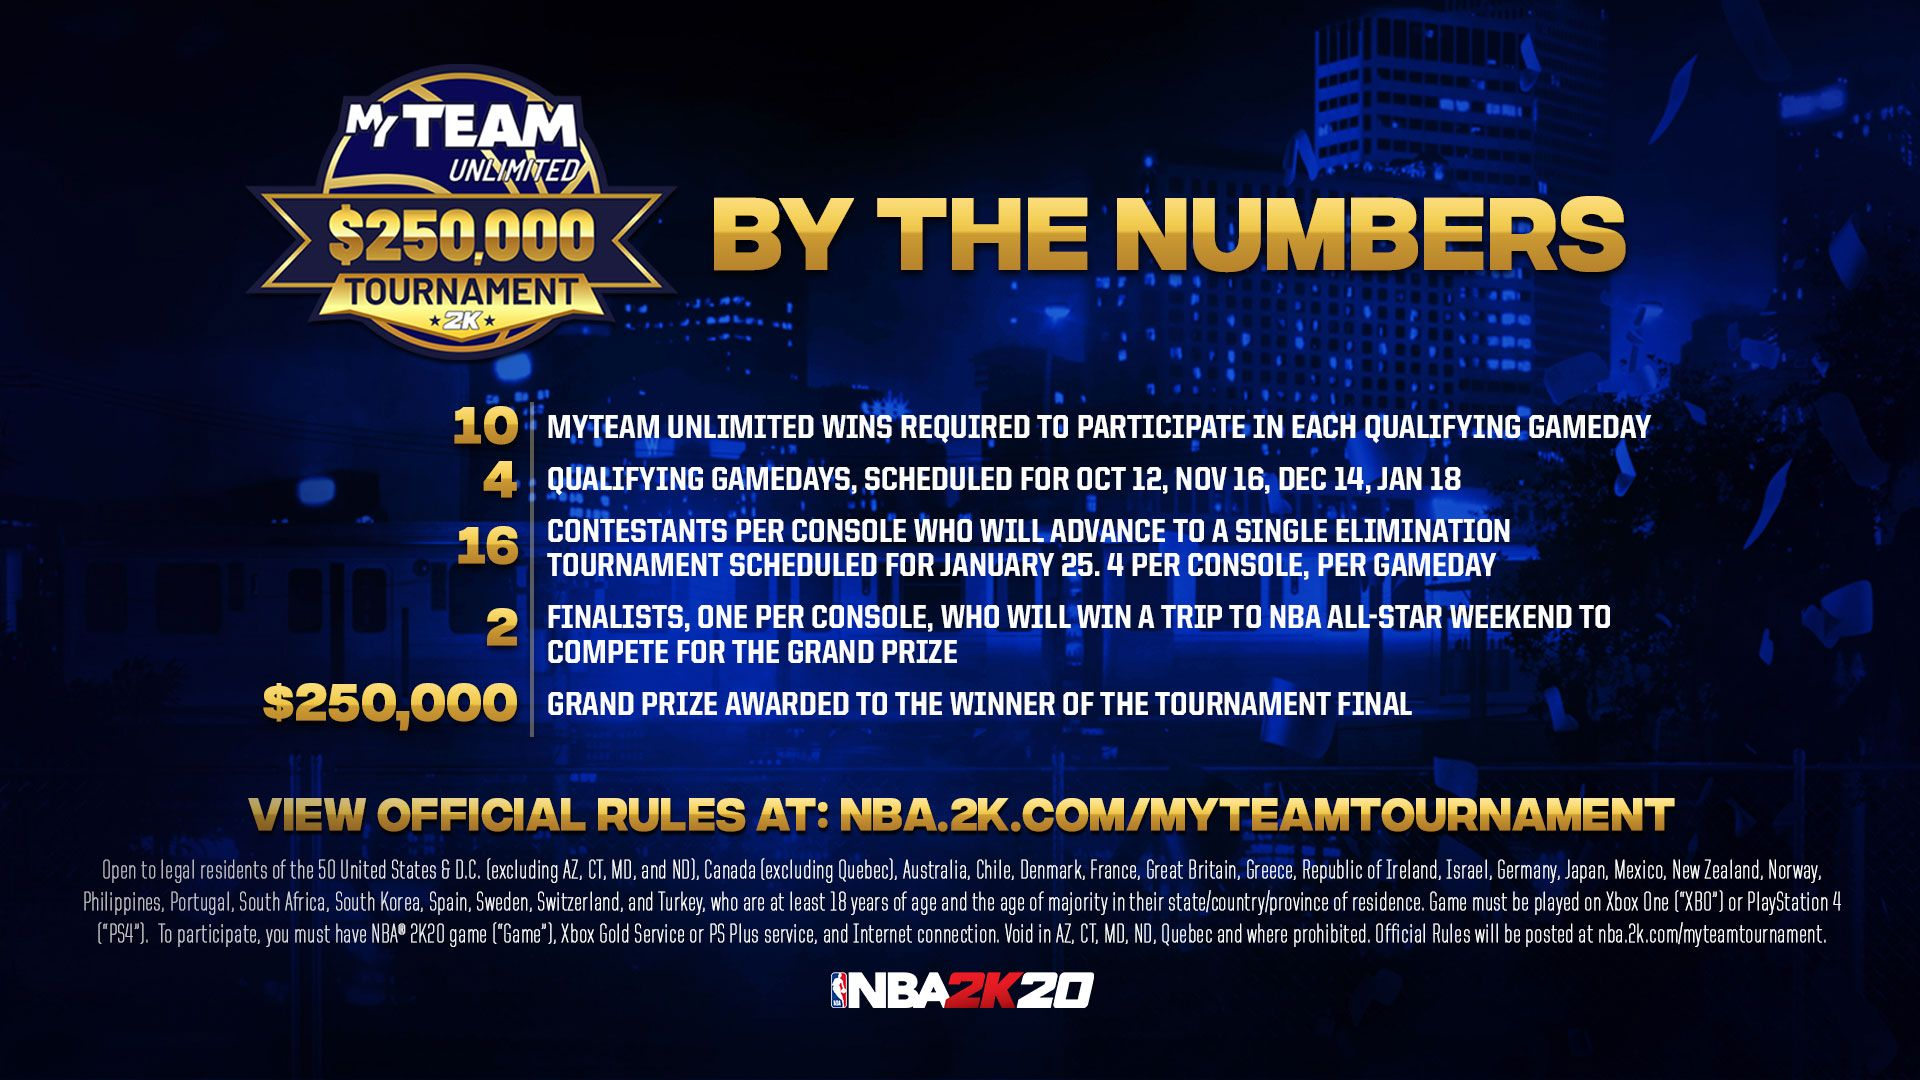 Myteam Unlimited 250 000 Tournament